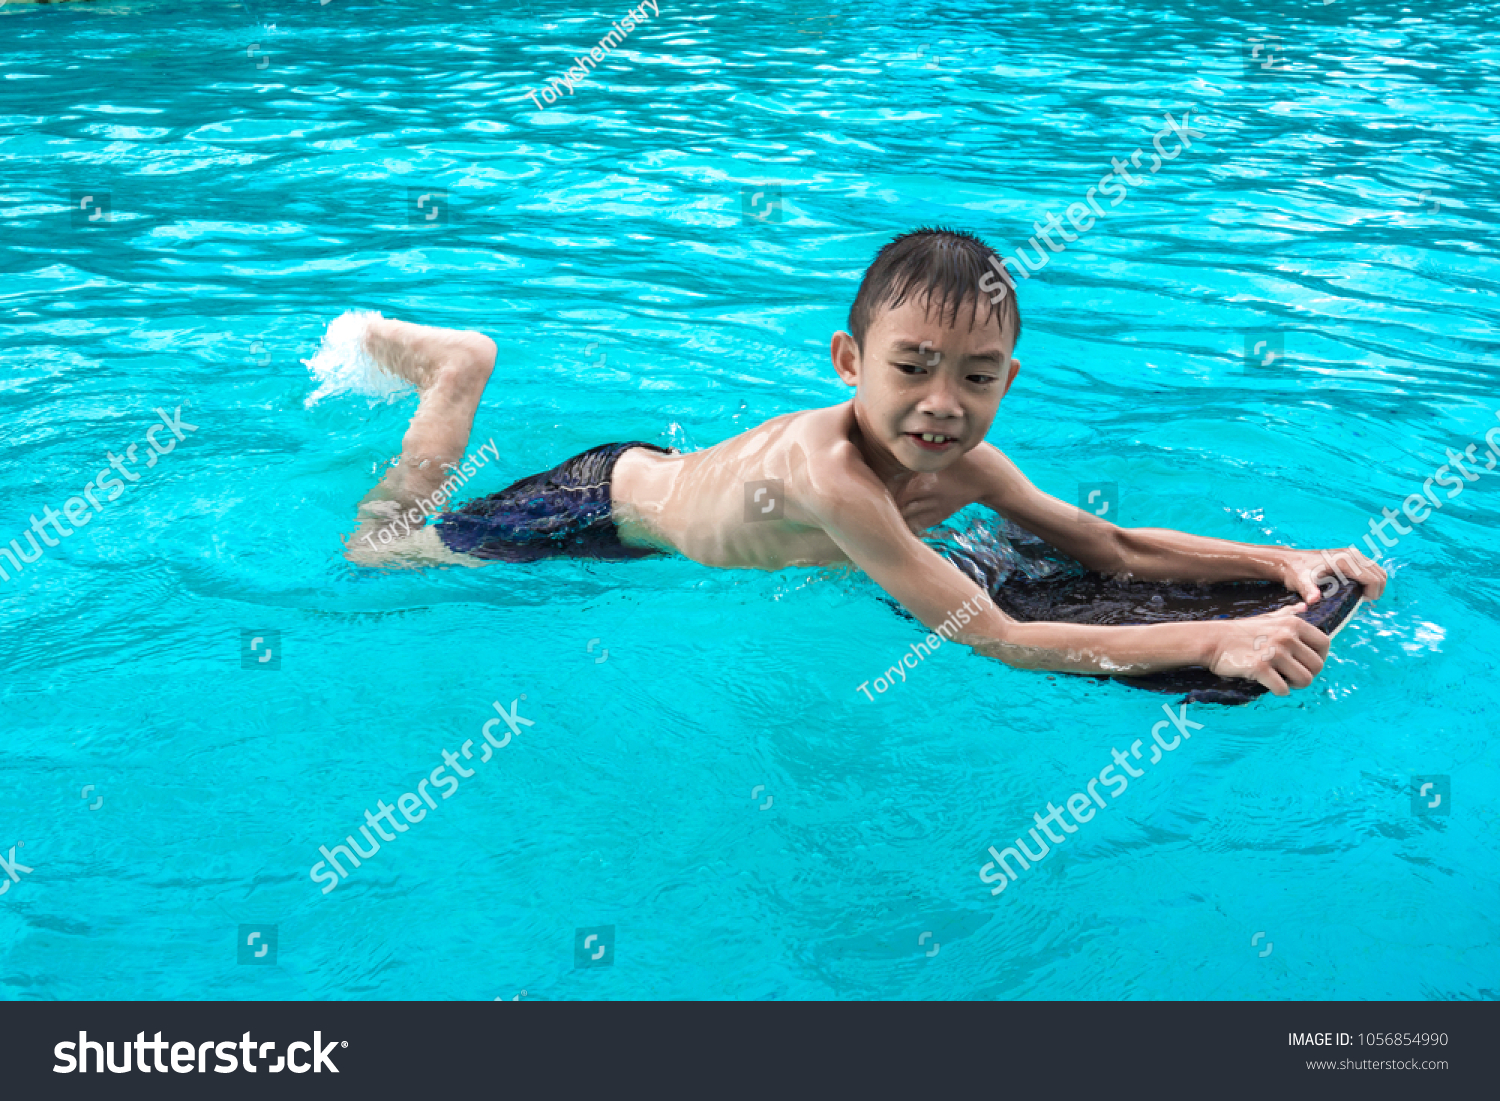 Oriental lad at swimming pool